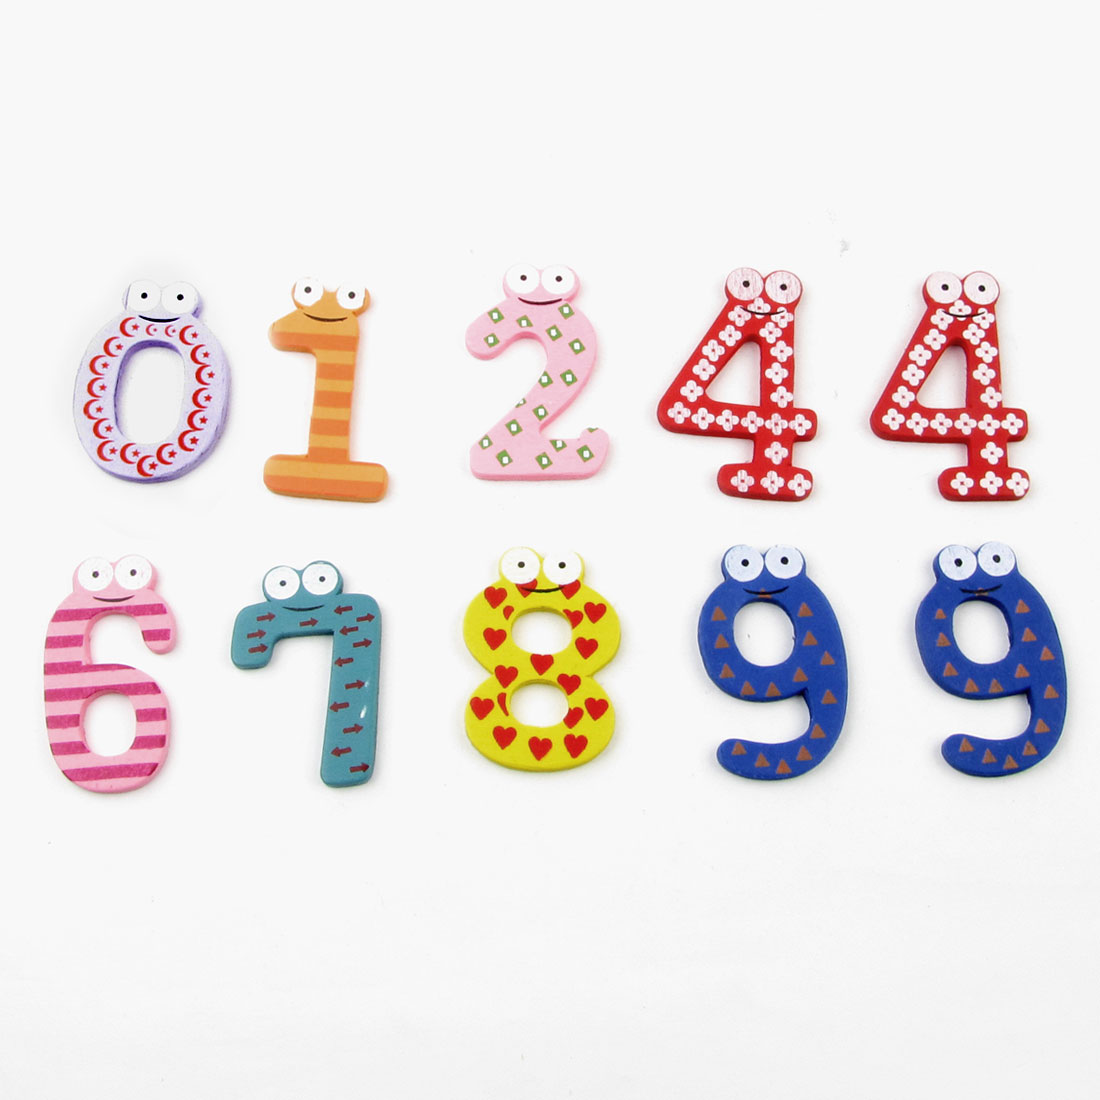 Fridge Refrigerator Ornament Wooden Number Type Magnet Sticker Multicolor 10 Pcs